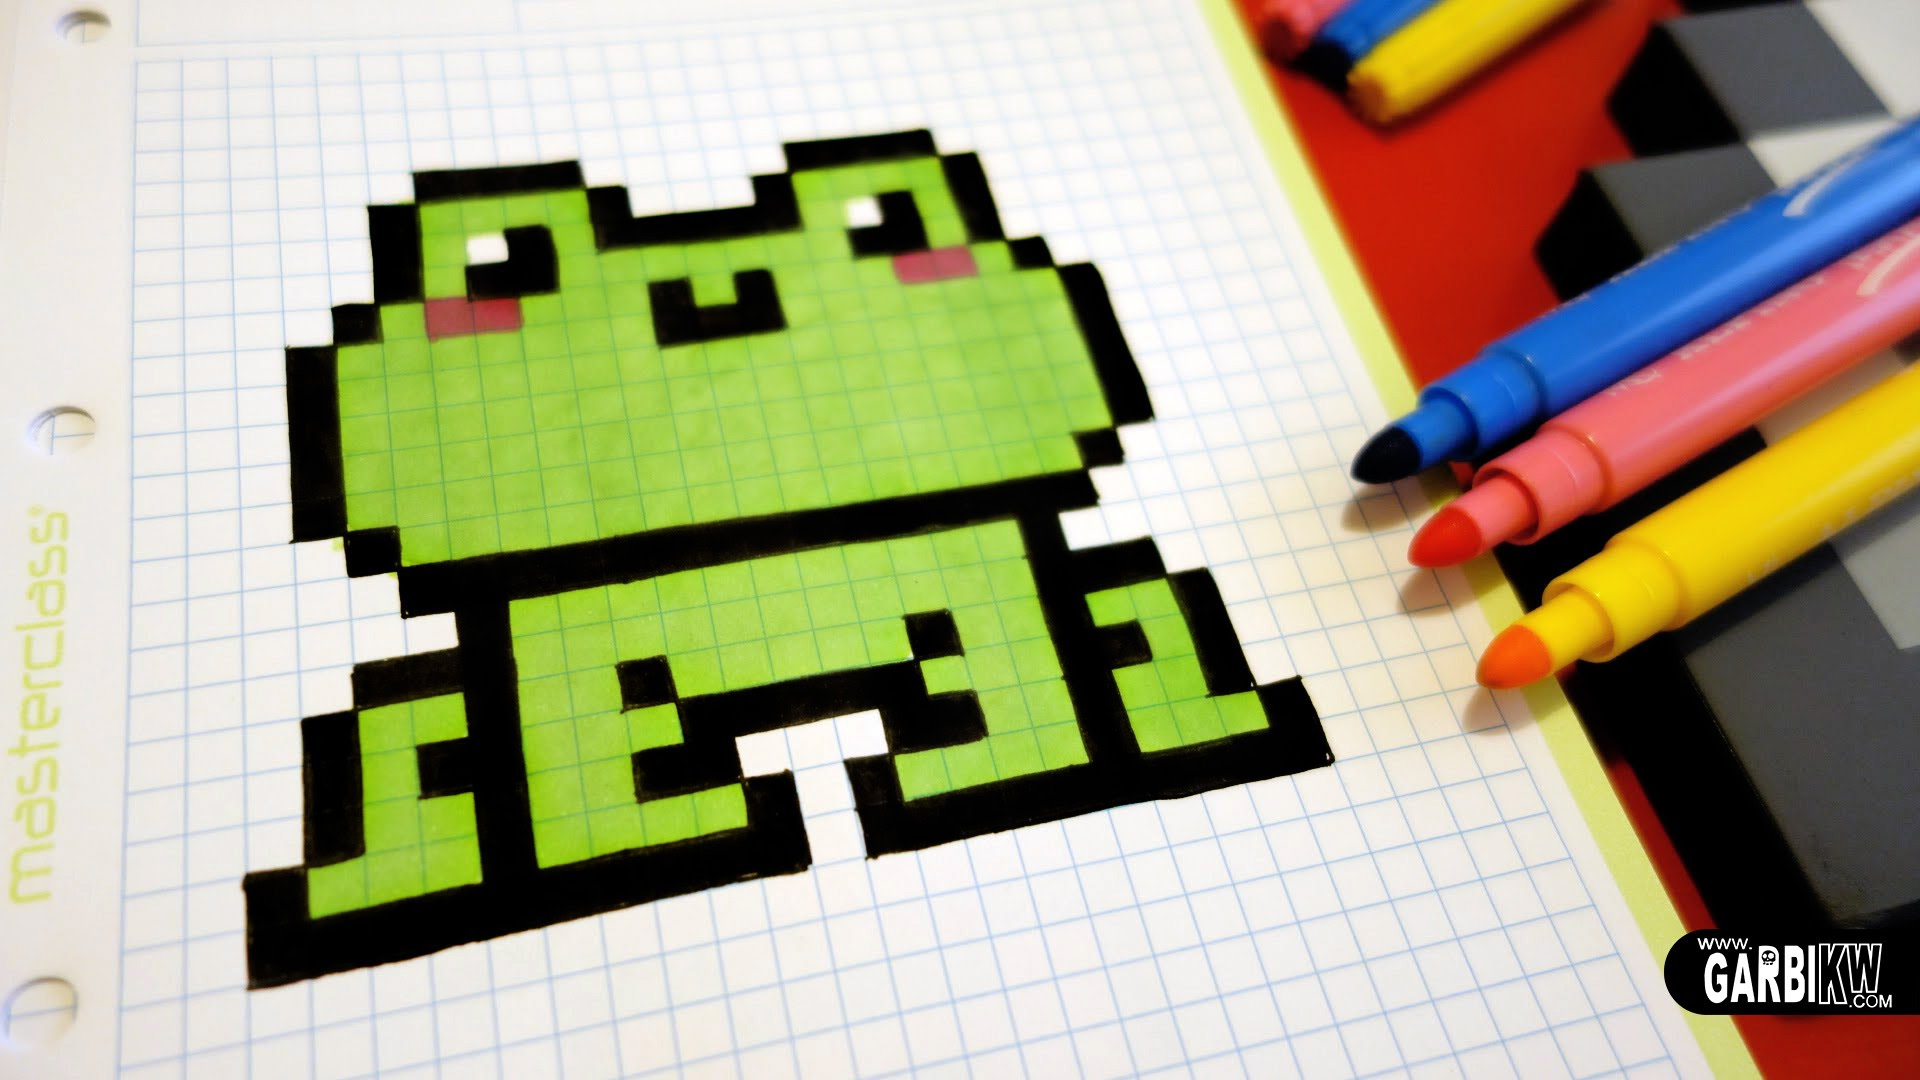 Drawn pixel art kawaii To #pixelart How Handmade Pixel